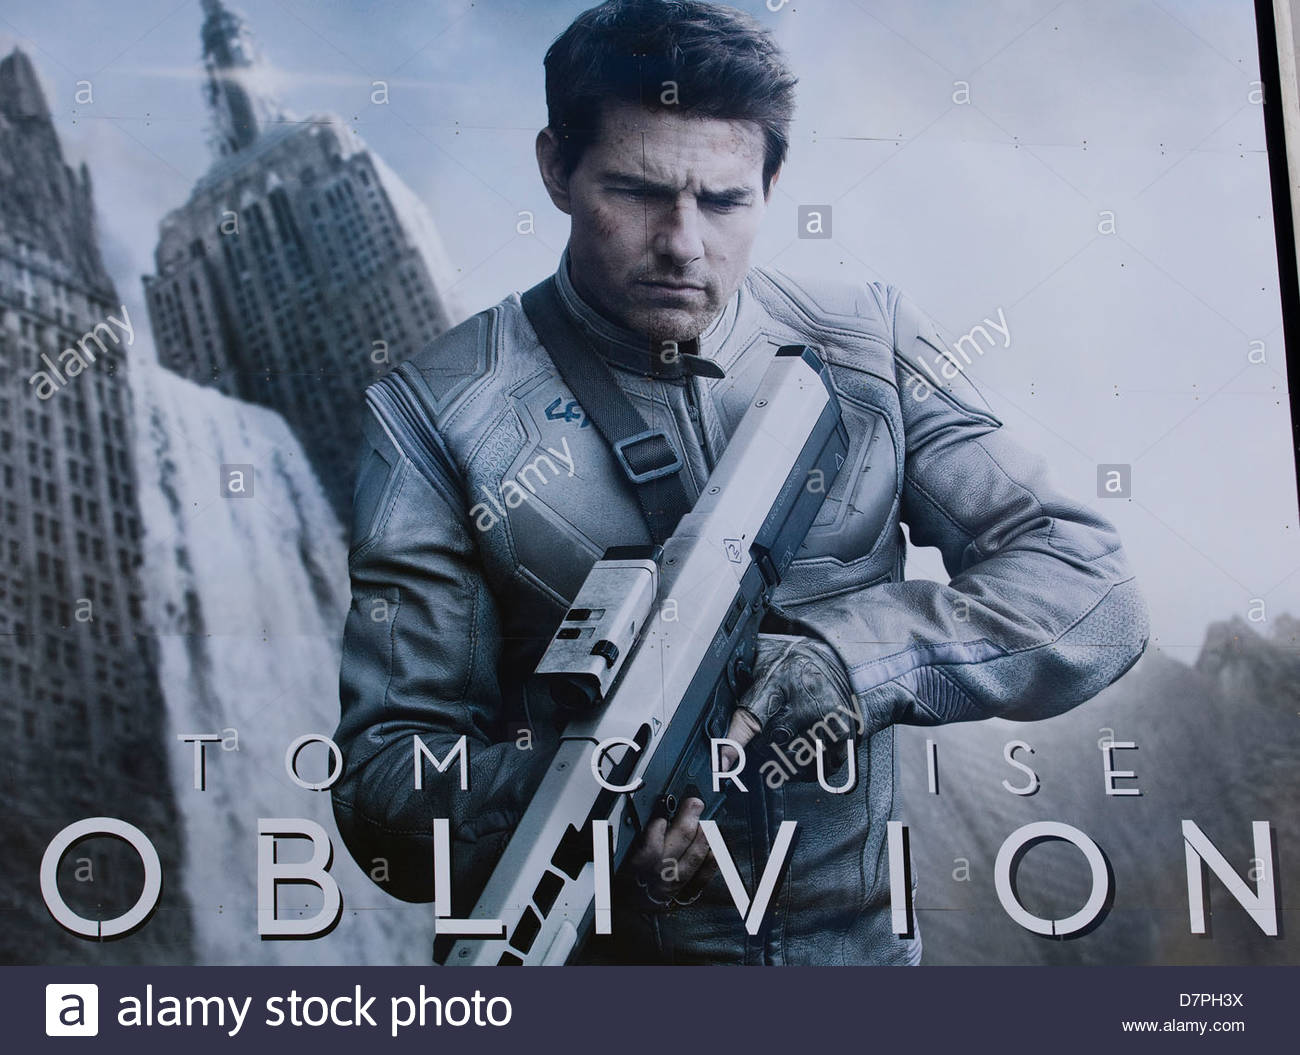 Billboard advertising the movie Oblivion starring Tom Cruise - Stock Image